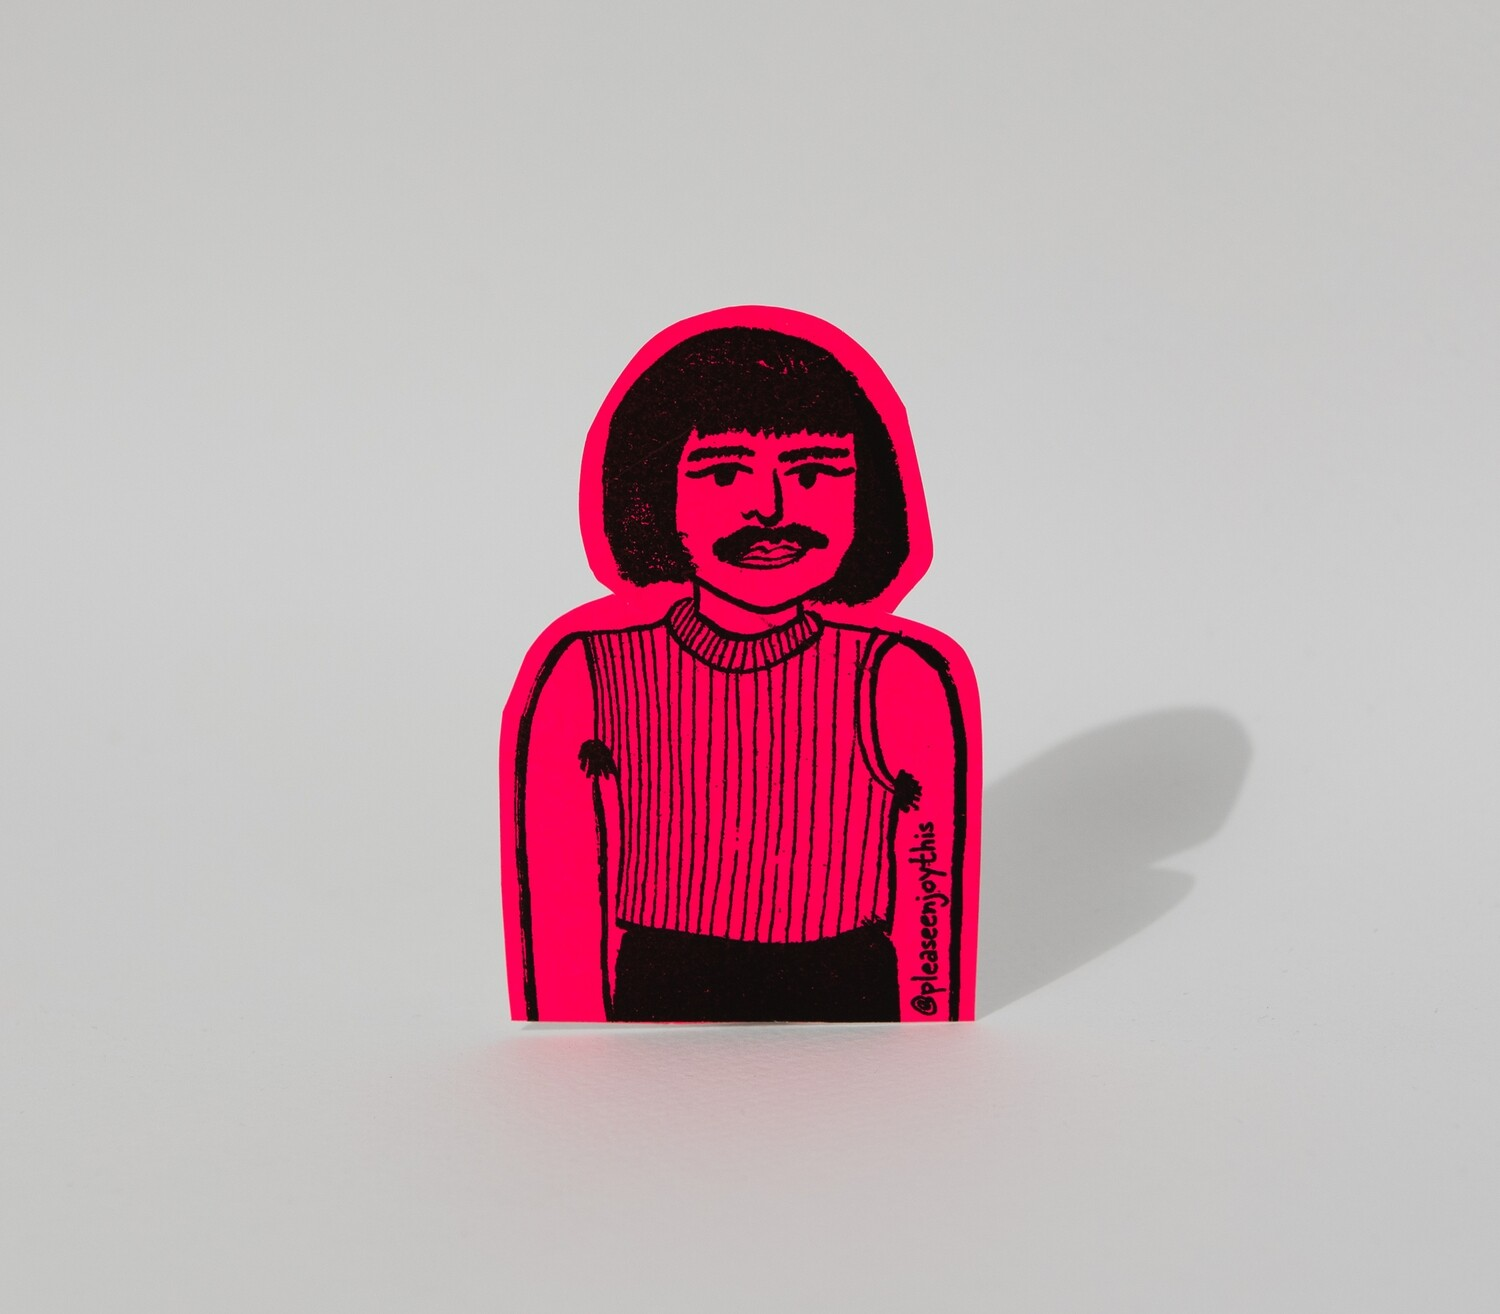 Sticker I want to break free